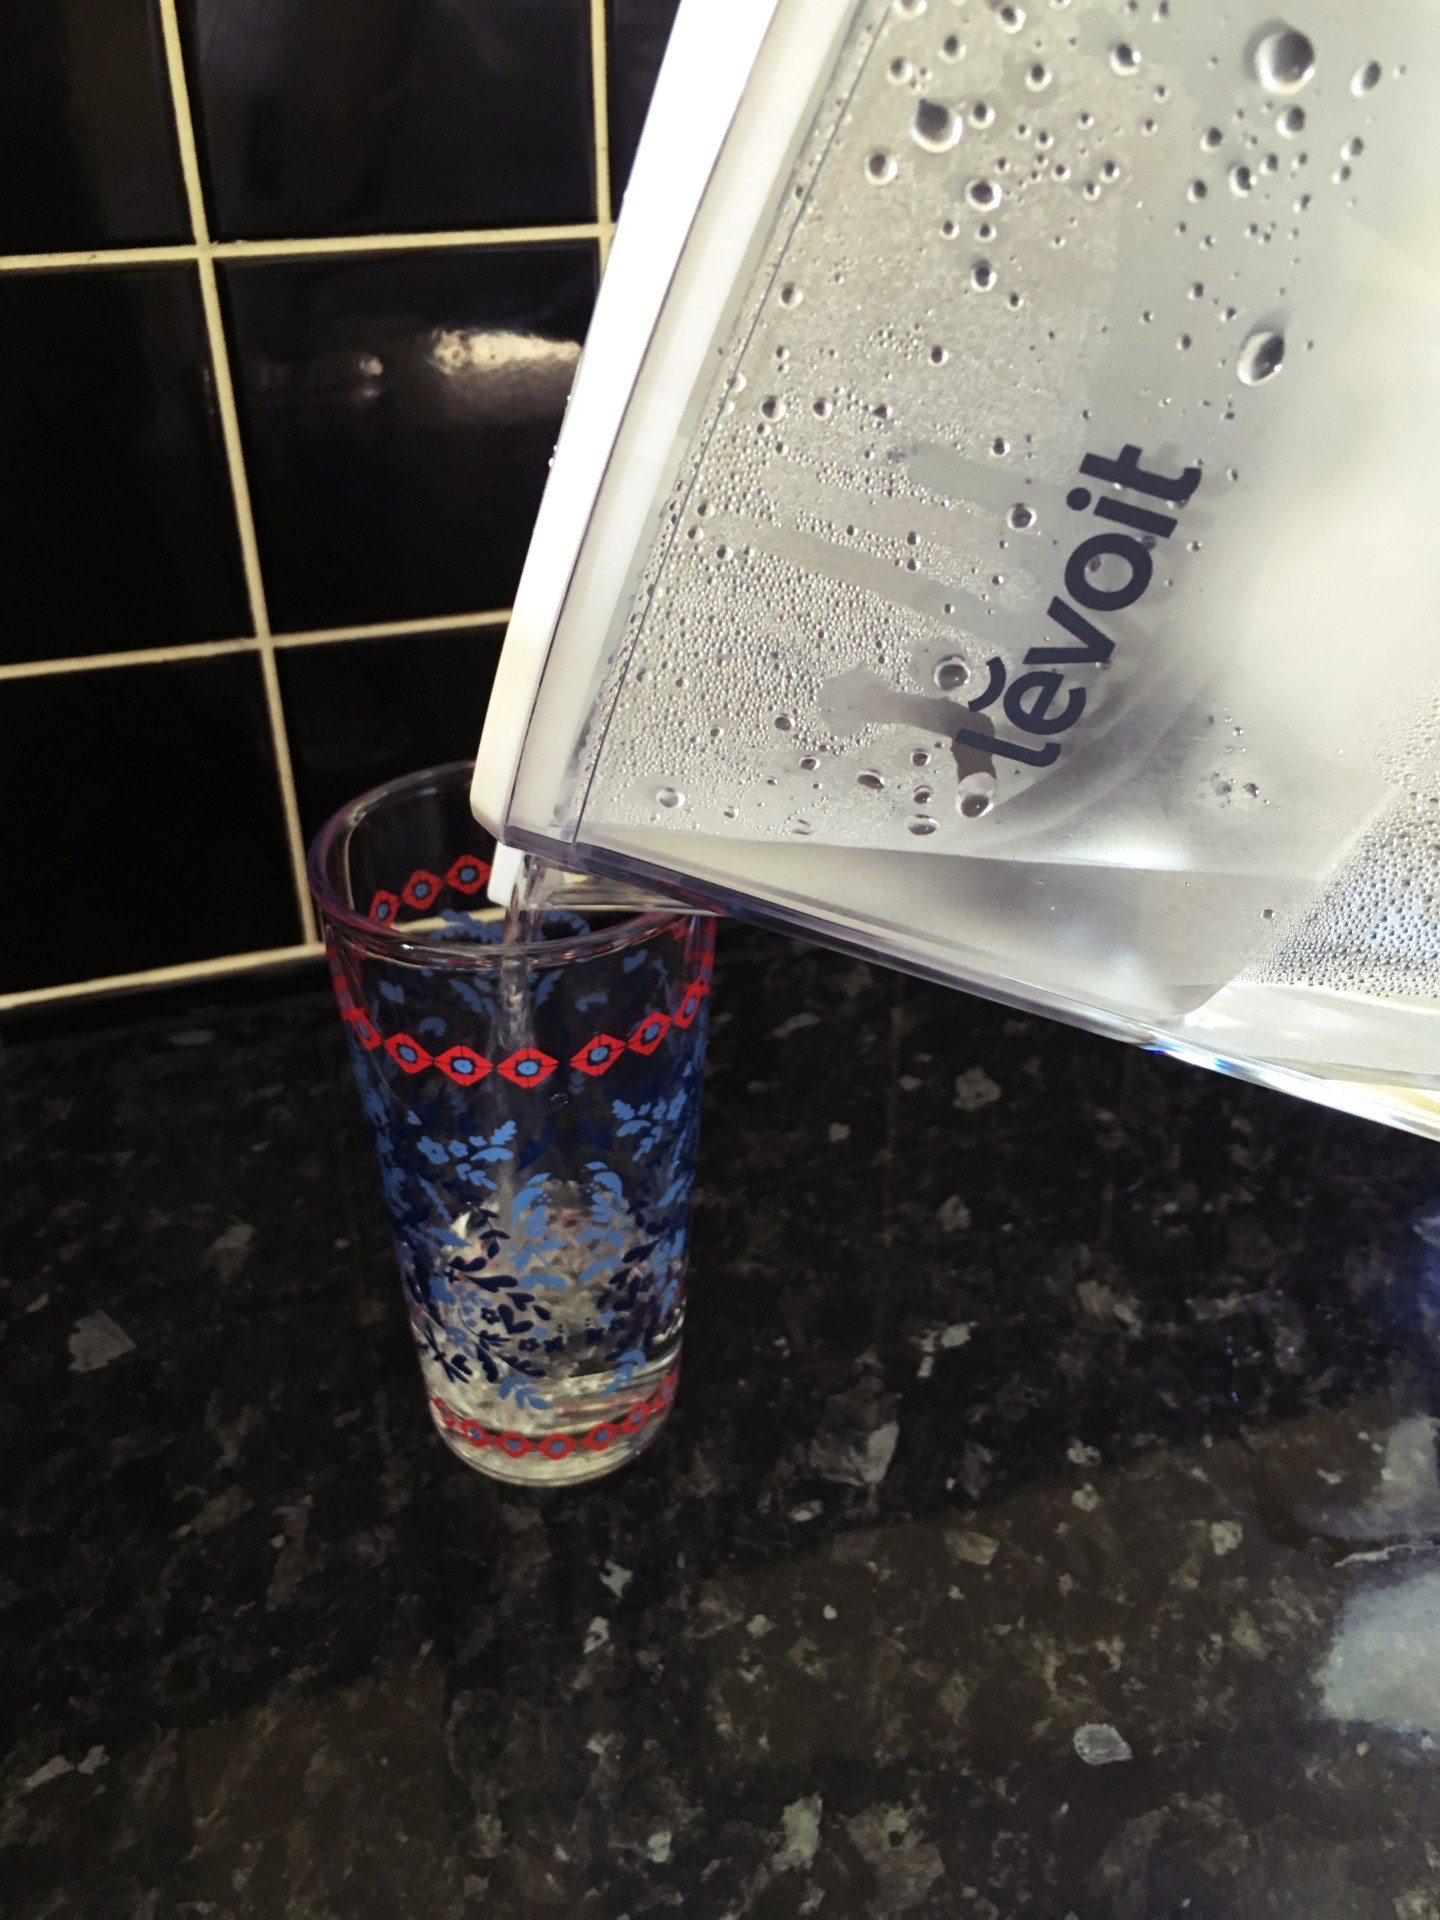 A photograph of water being poured from the Levoit water filter jug in my kitchen.